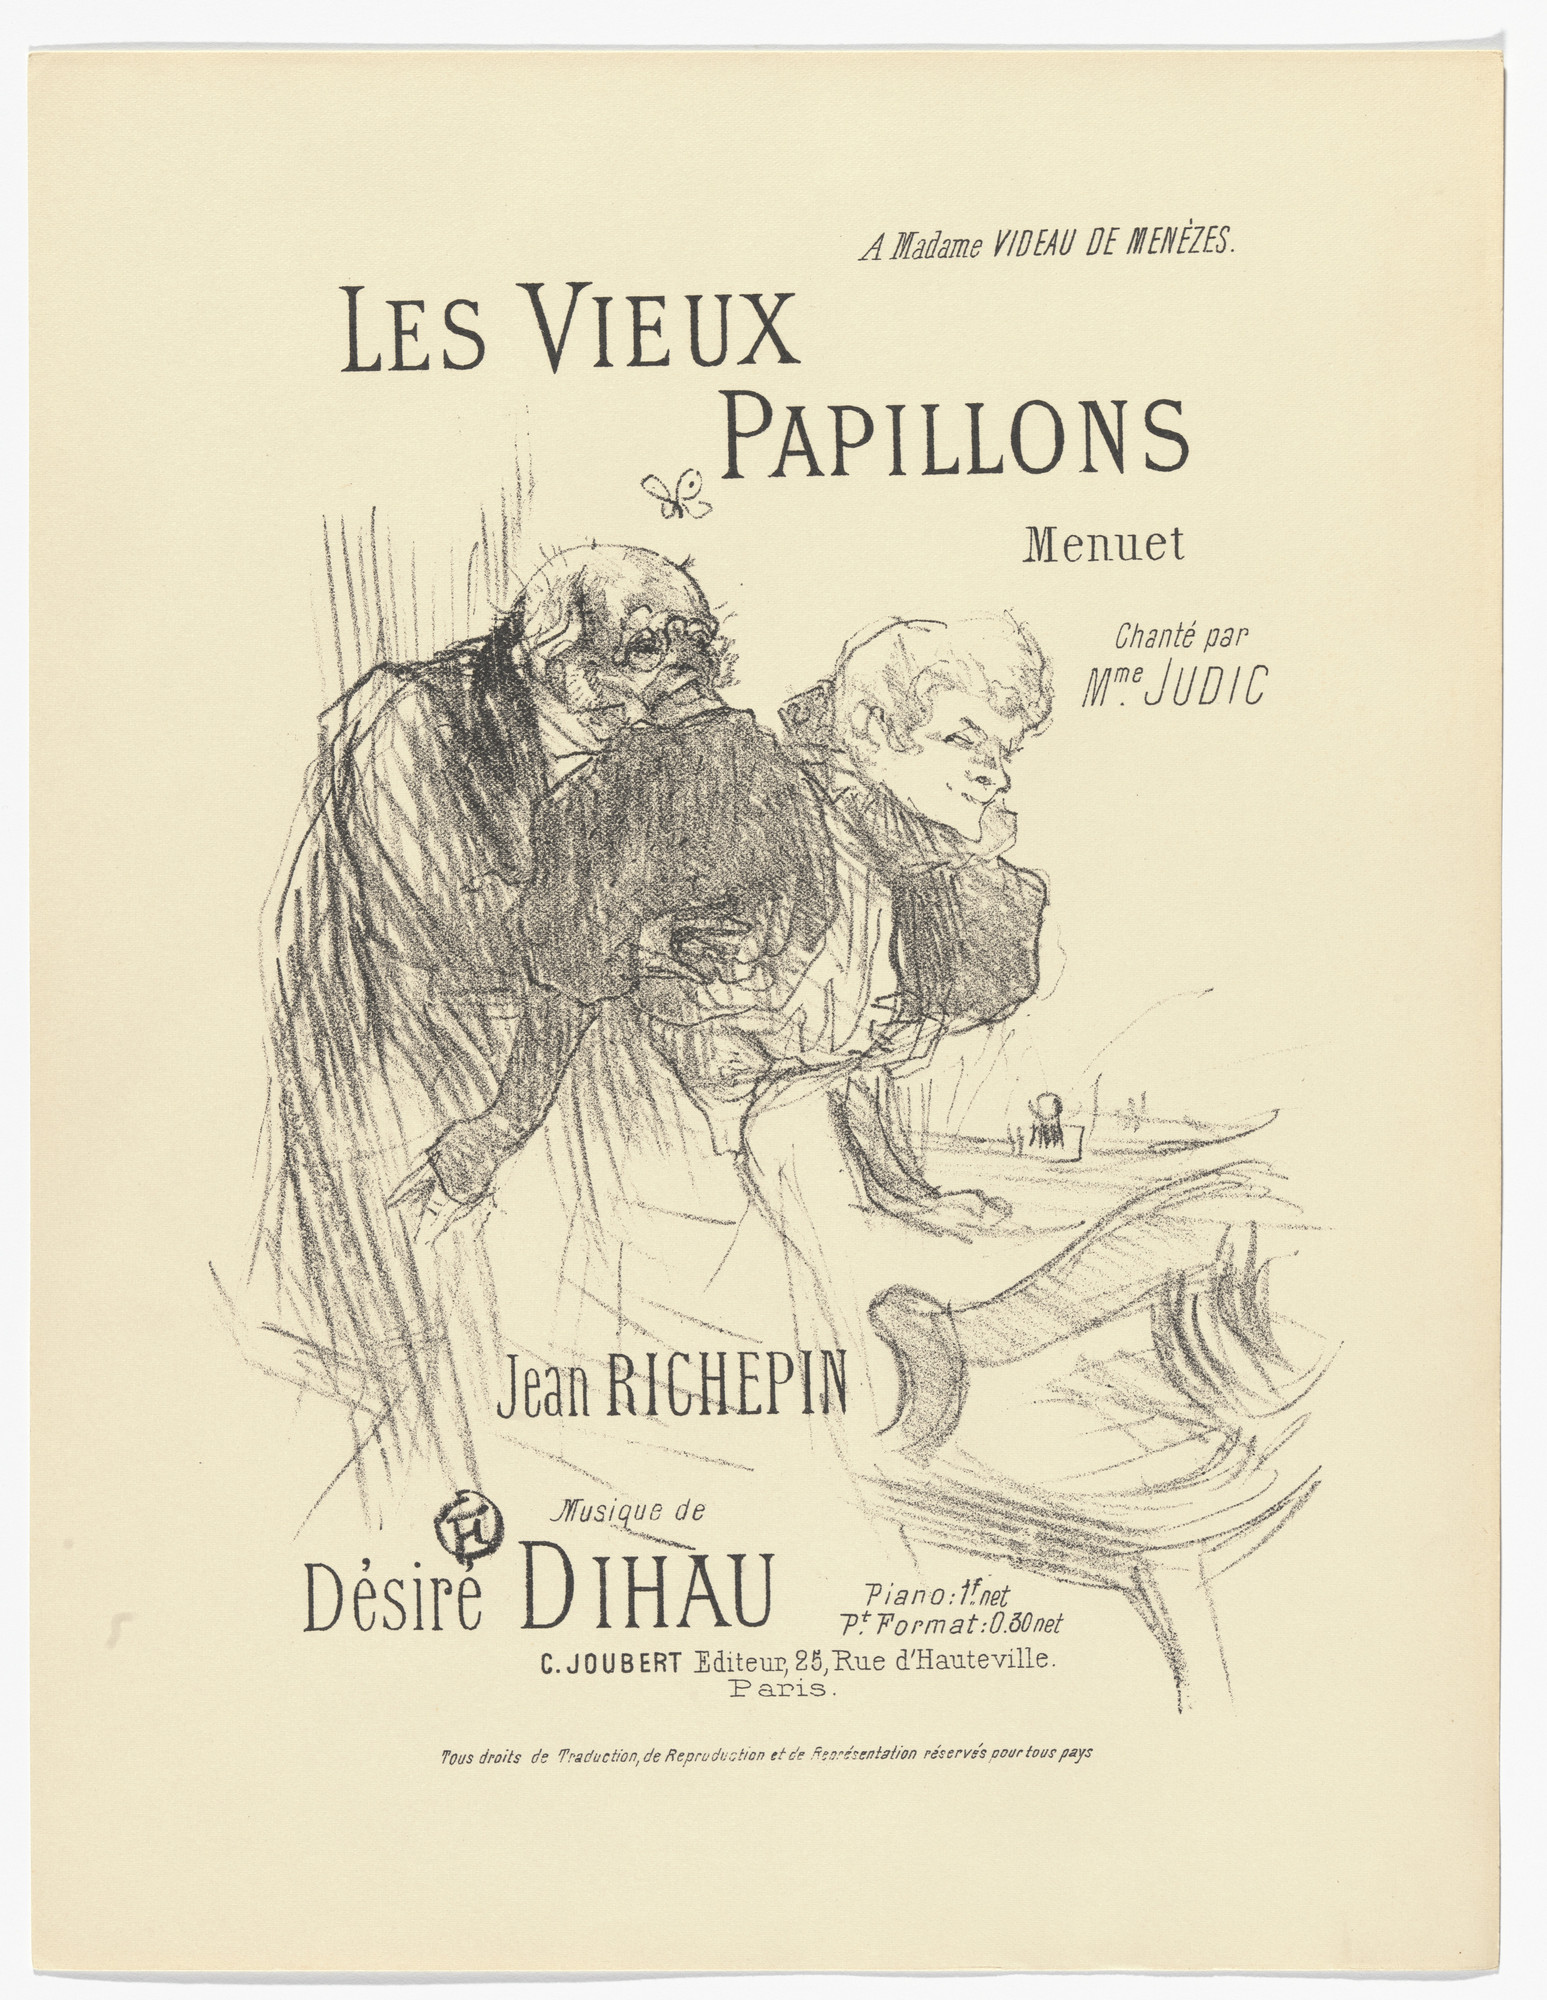 Henri de Toulouse-Lautrec. The Old Butterflies (Les vieux papillons) from Quatorze lithographies originales (Mélodies de Désiré Dihau). 1895, published 1935